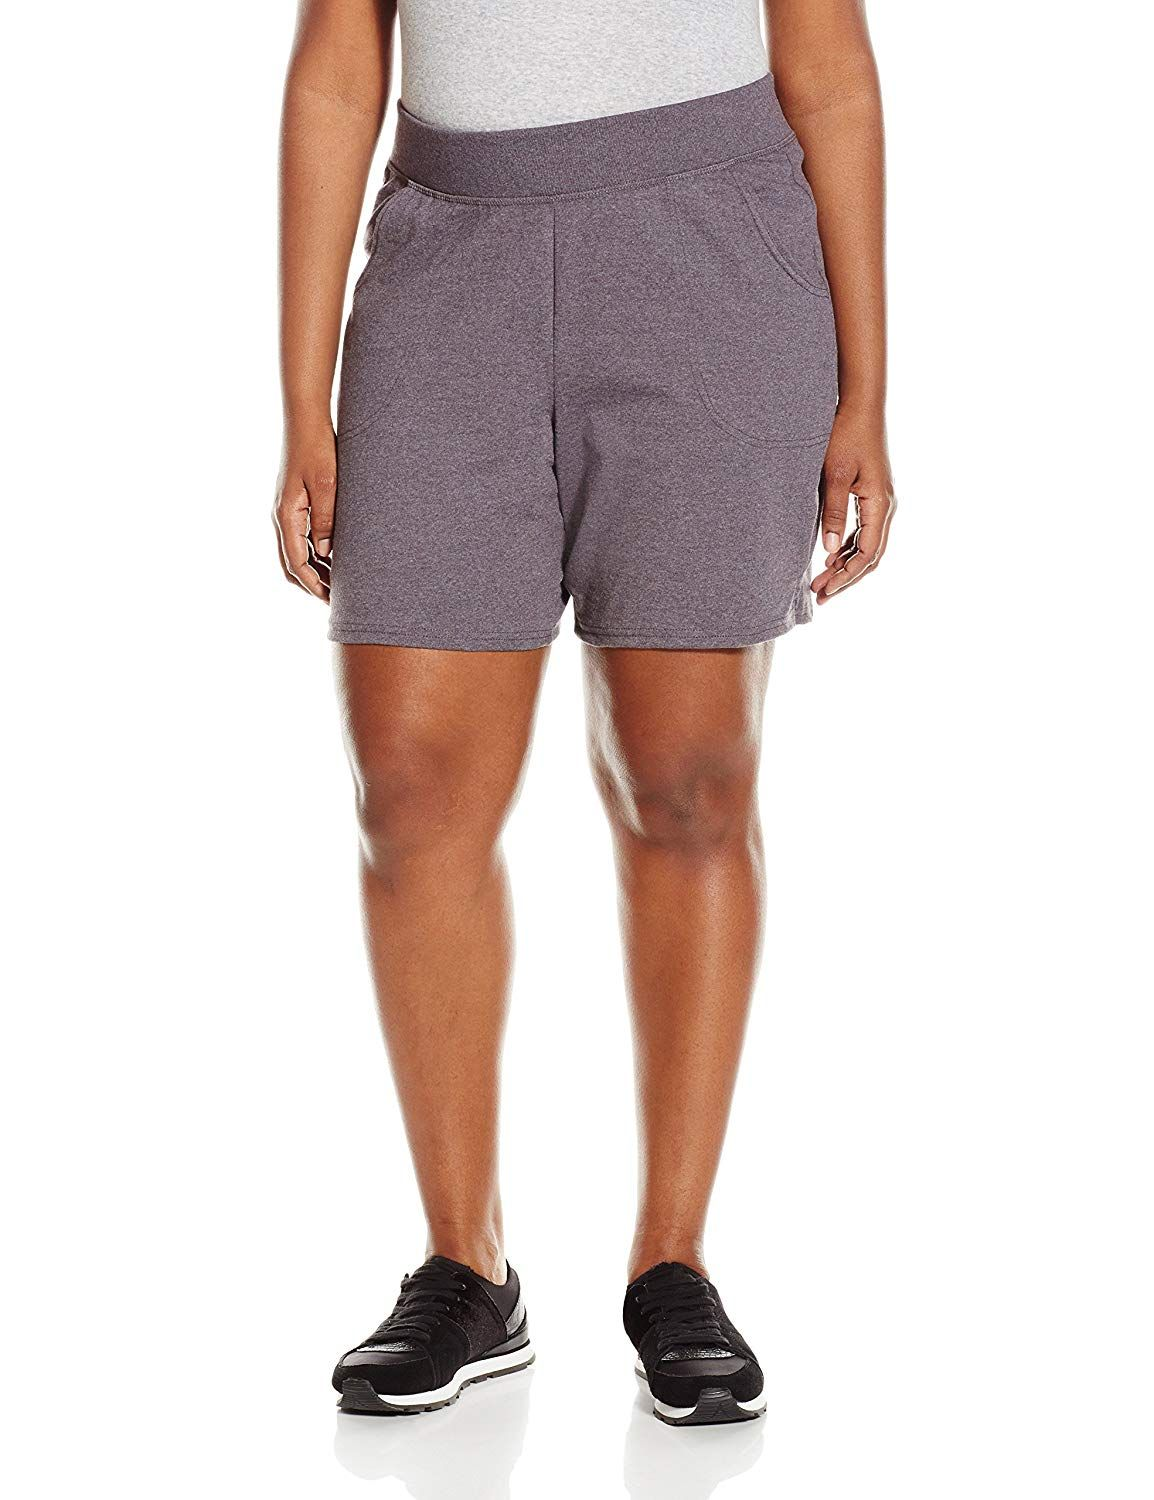 c70eb59c3fe33 Women s Active Shorts - Just My Size Women s Plus Cotton Jersey Pull-On  Shorts